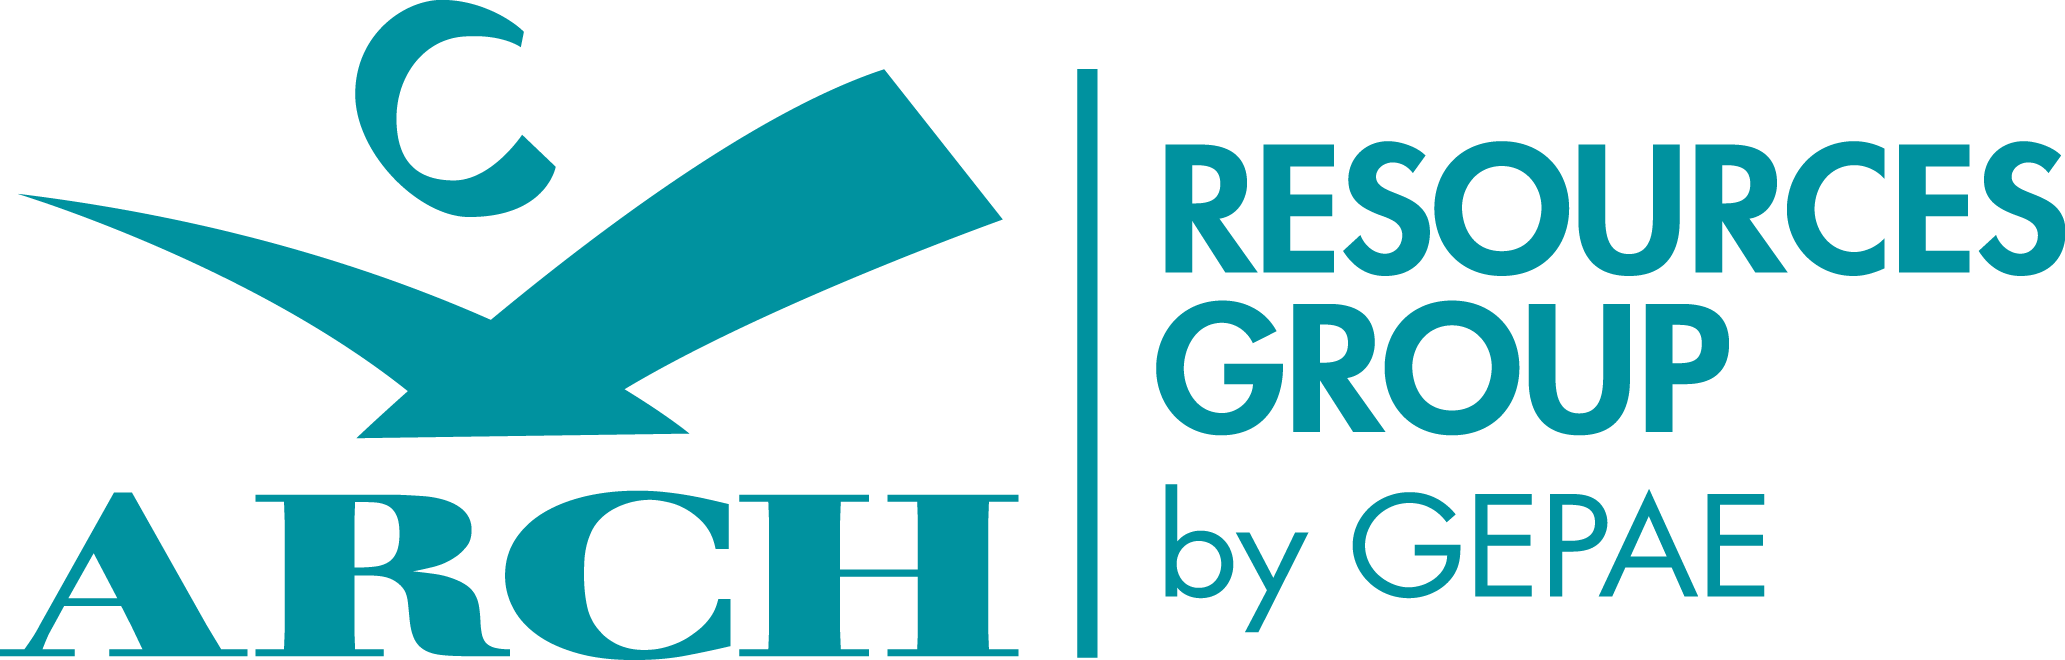 Arch Resource Group